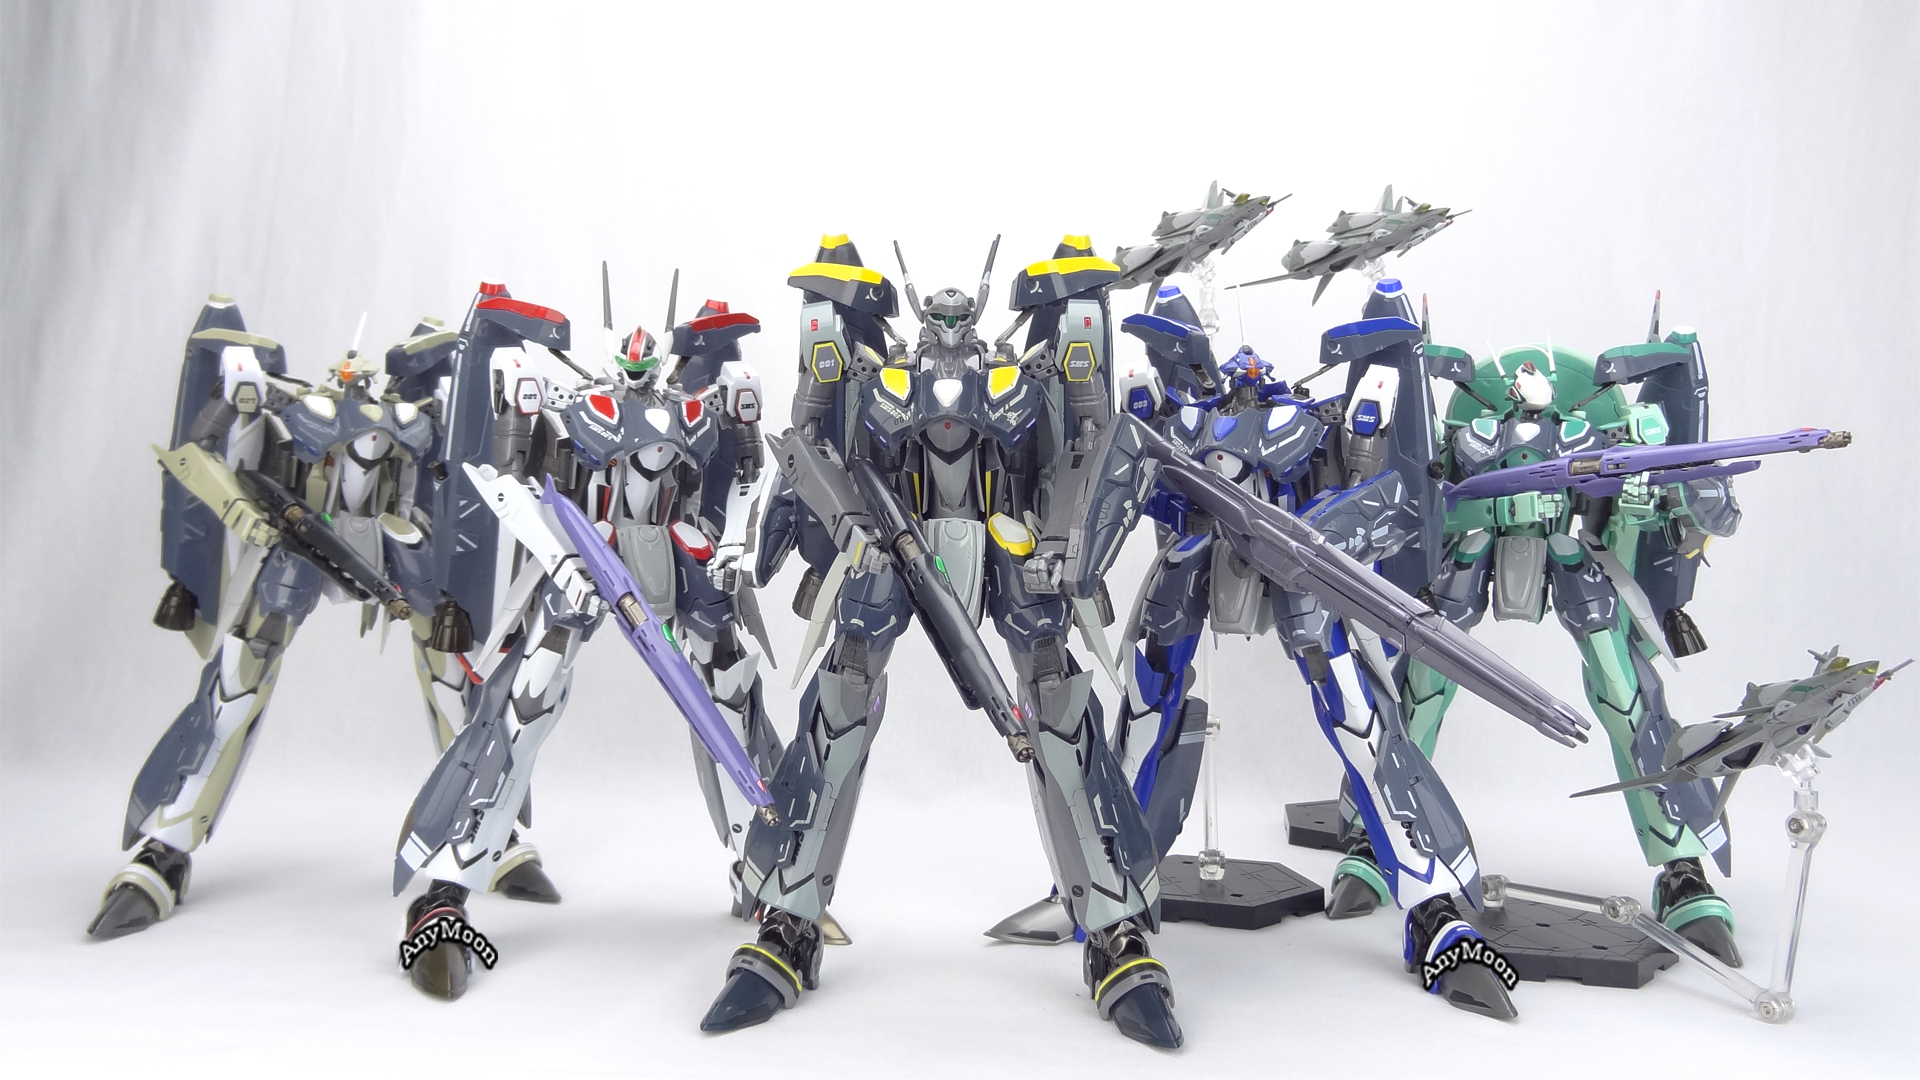 Bandai-RVF-25-Super-Parts-20.jpg